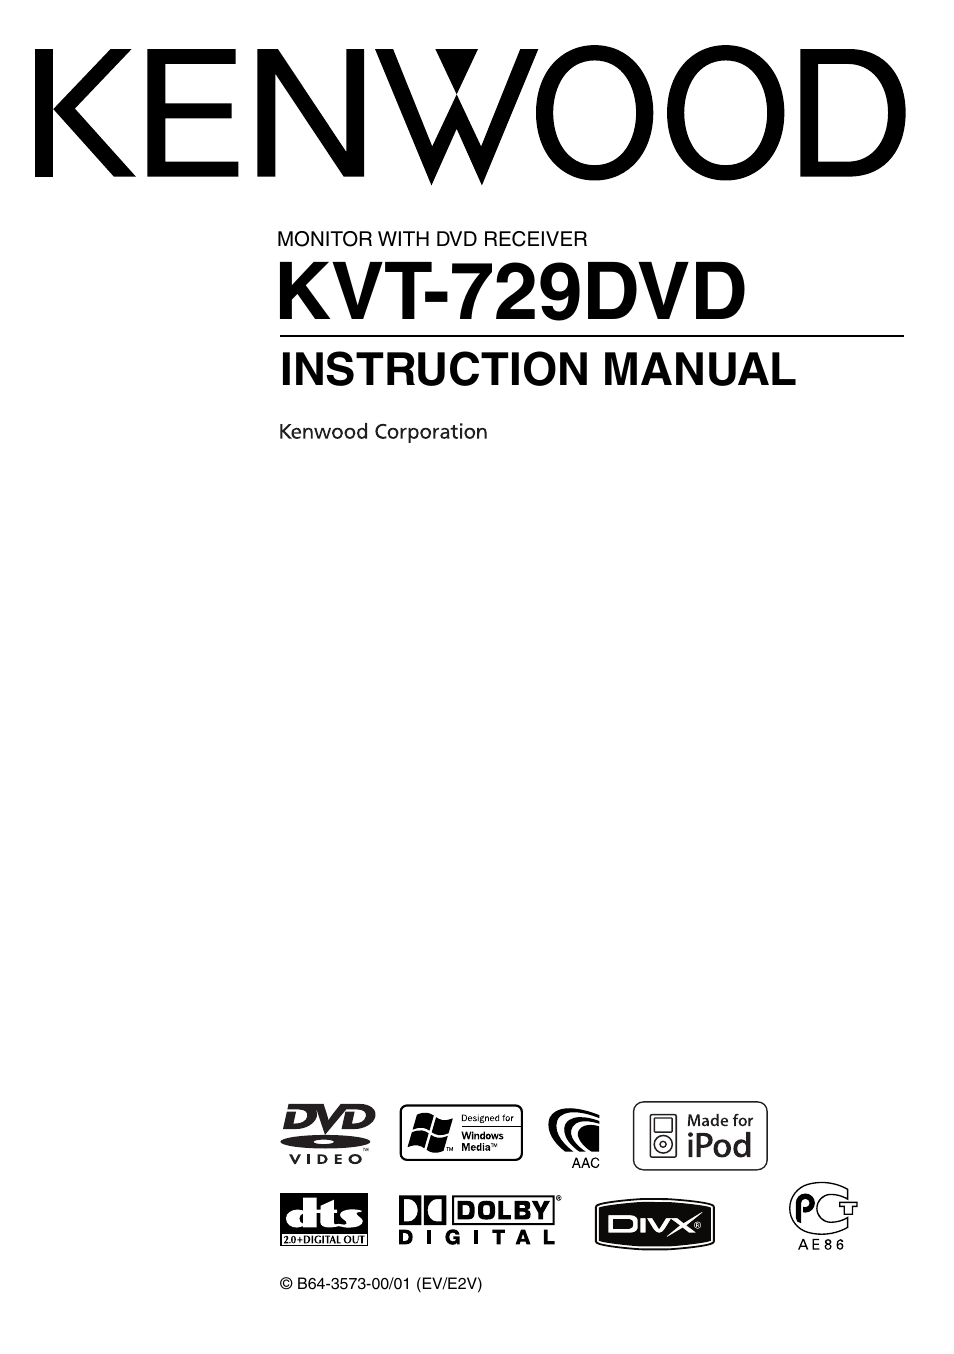 List Of Synonyms And Antonyms The Word Kenwood Car Audio Manuals Land Rover Wiring Diagram Download Free Pdf For Kdc 9000 Receiver Manual